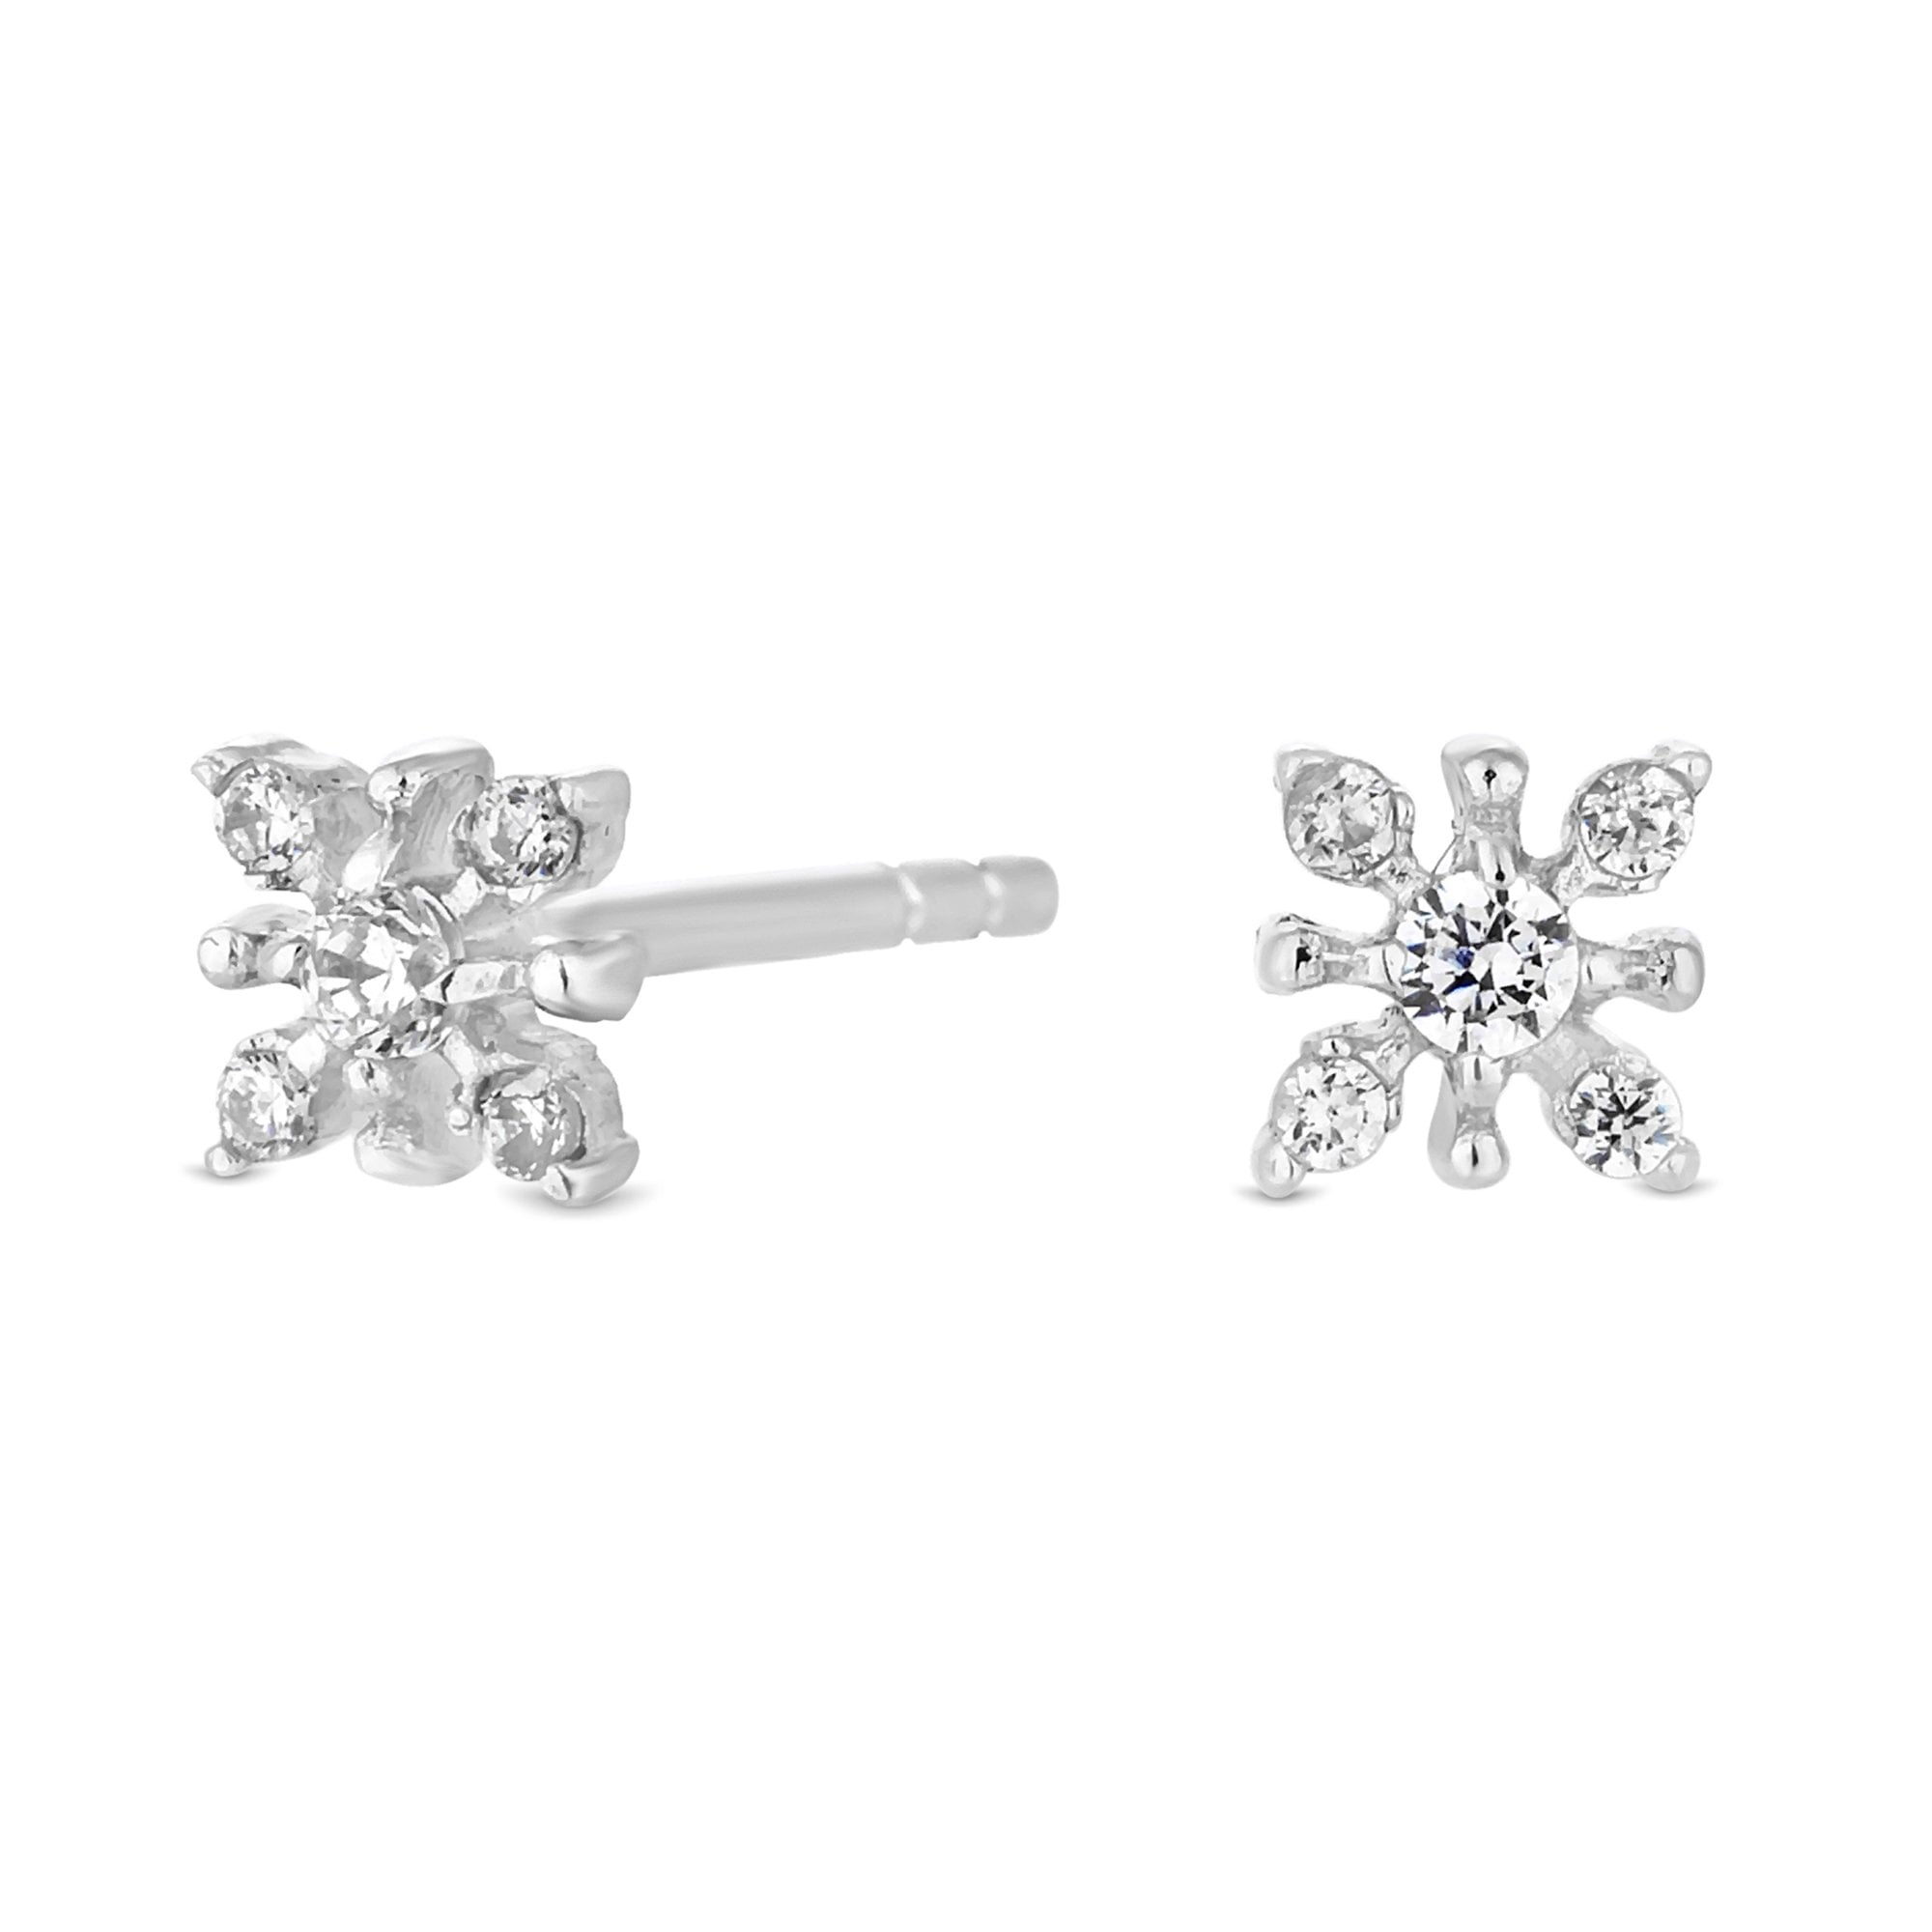 Silver Cubic Zirconia 4MM Parallel Setting Stud Earrings   Icing US